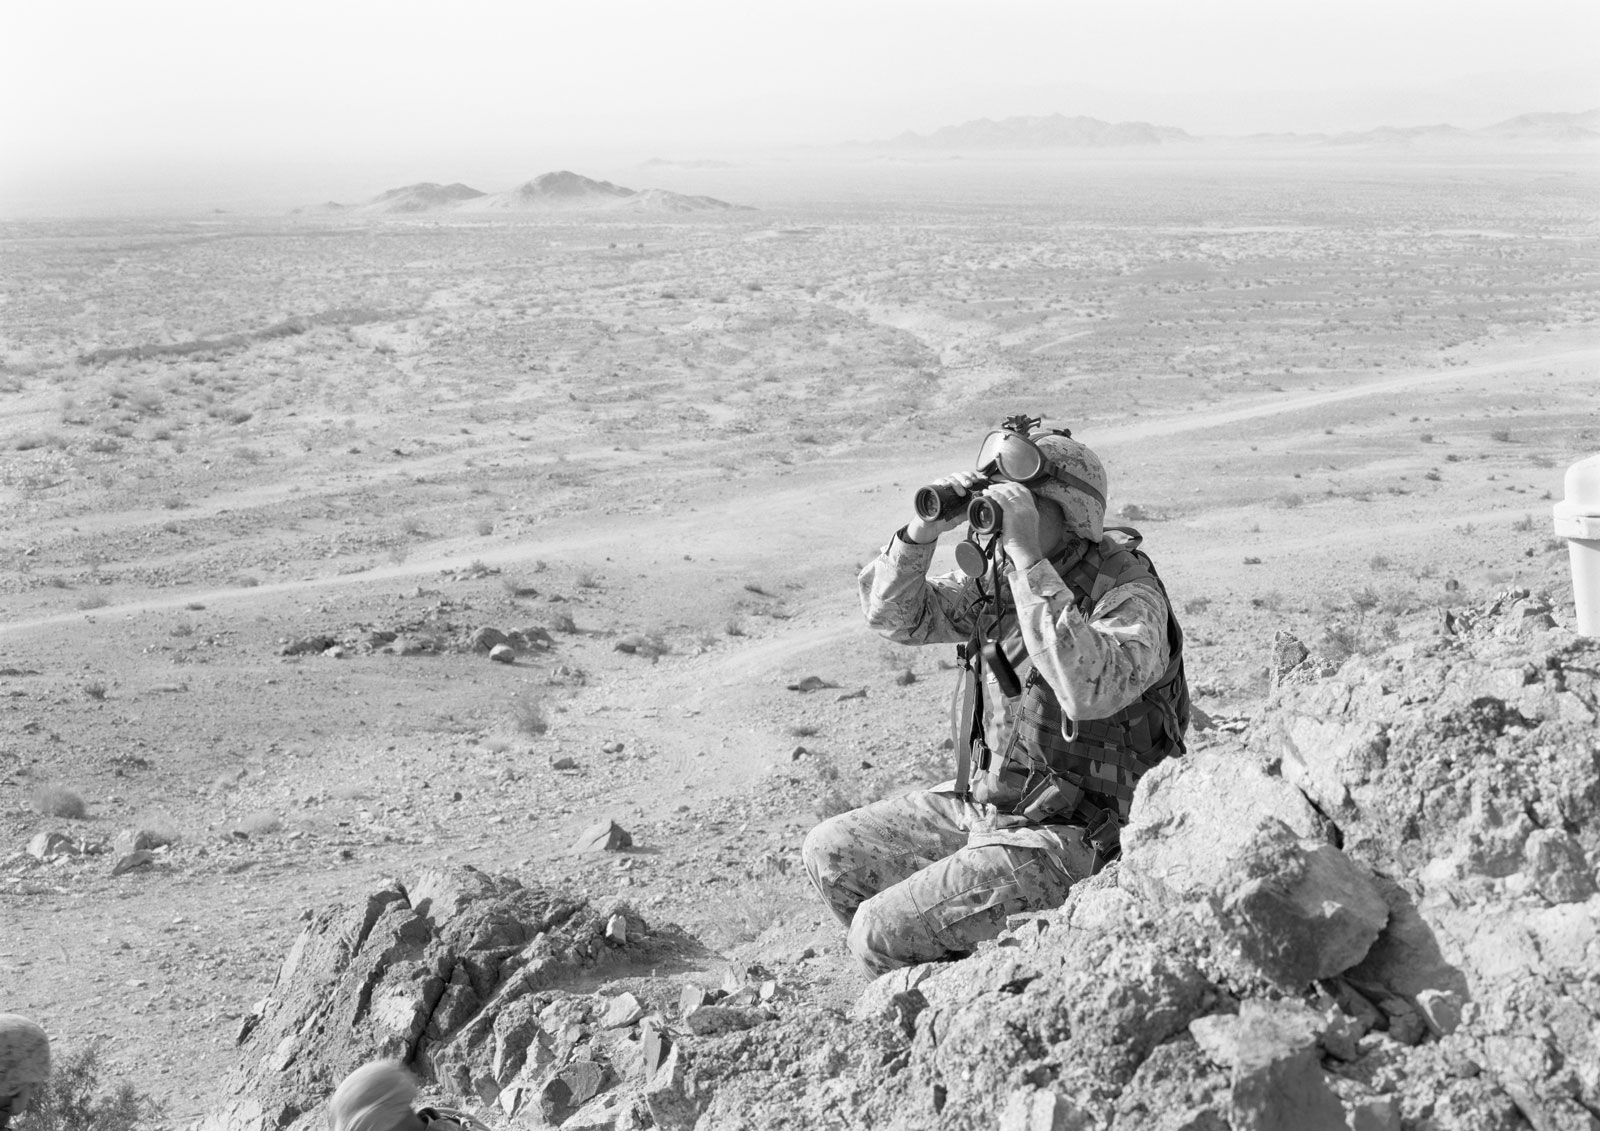 A soldier using binoculars to look out over a hilly area